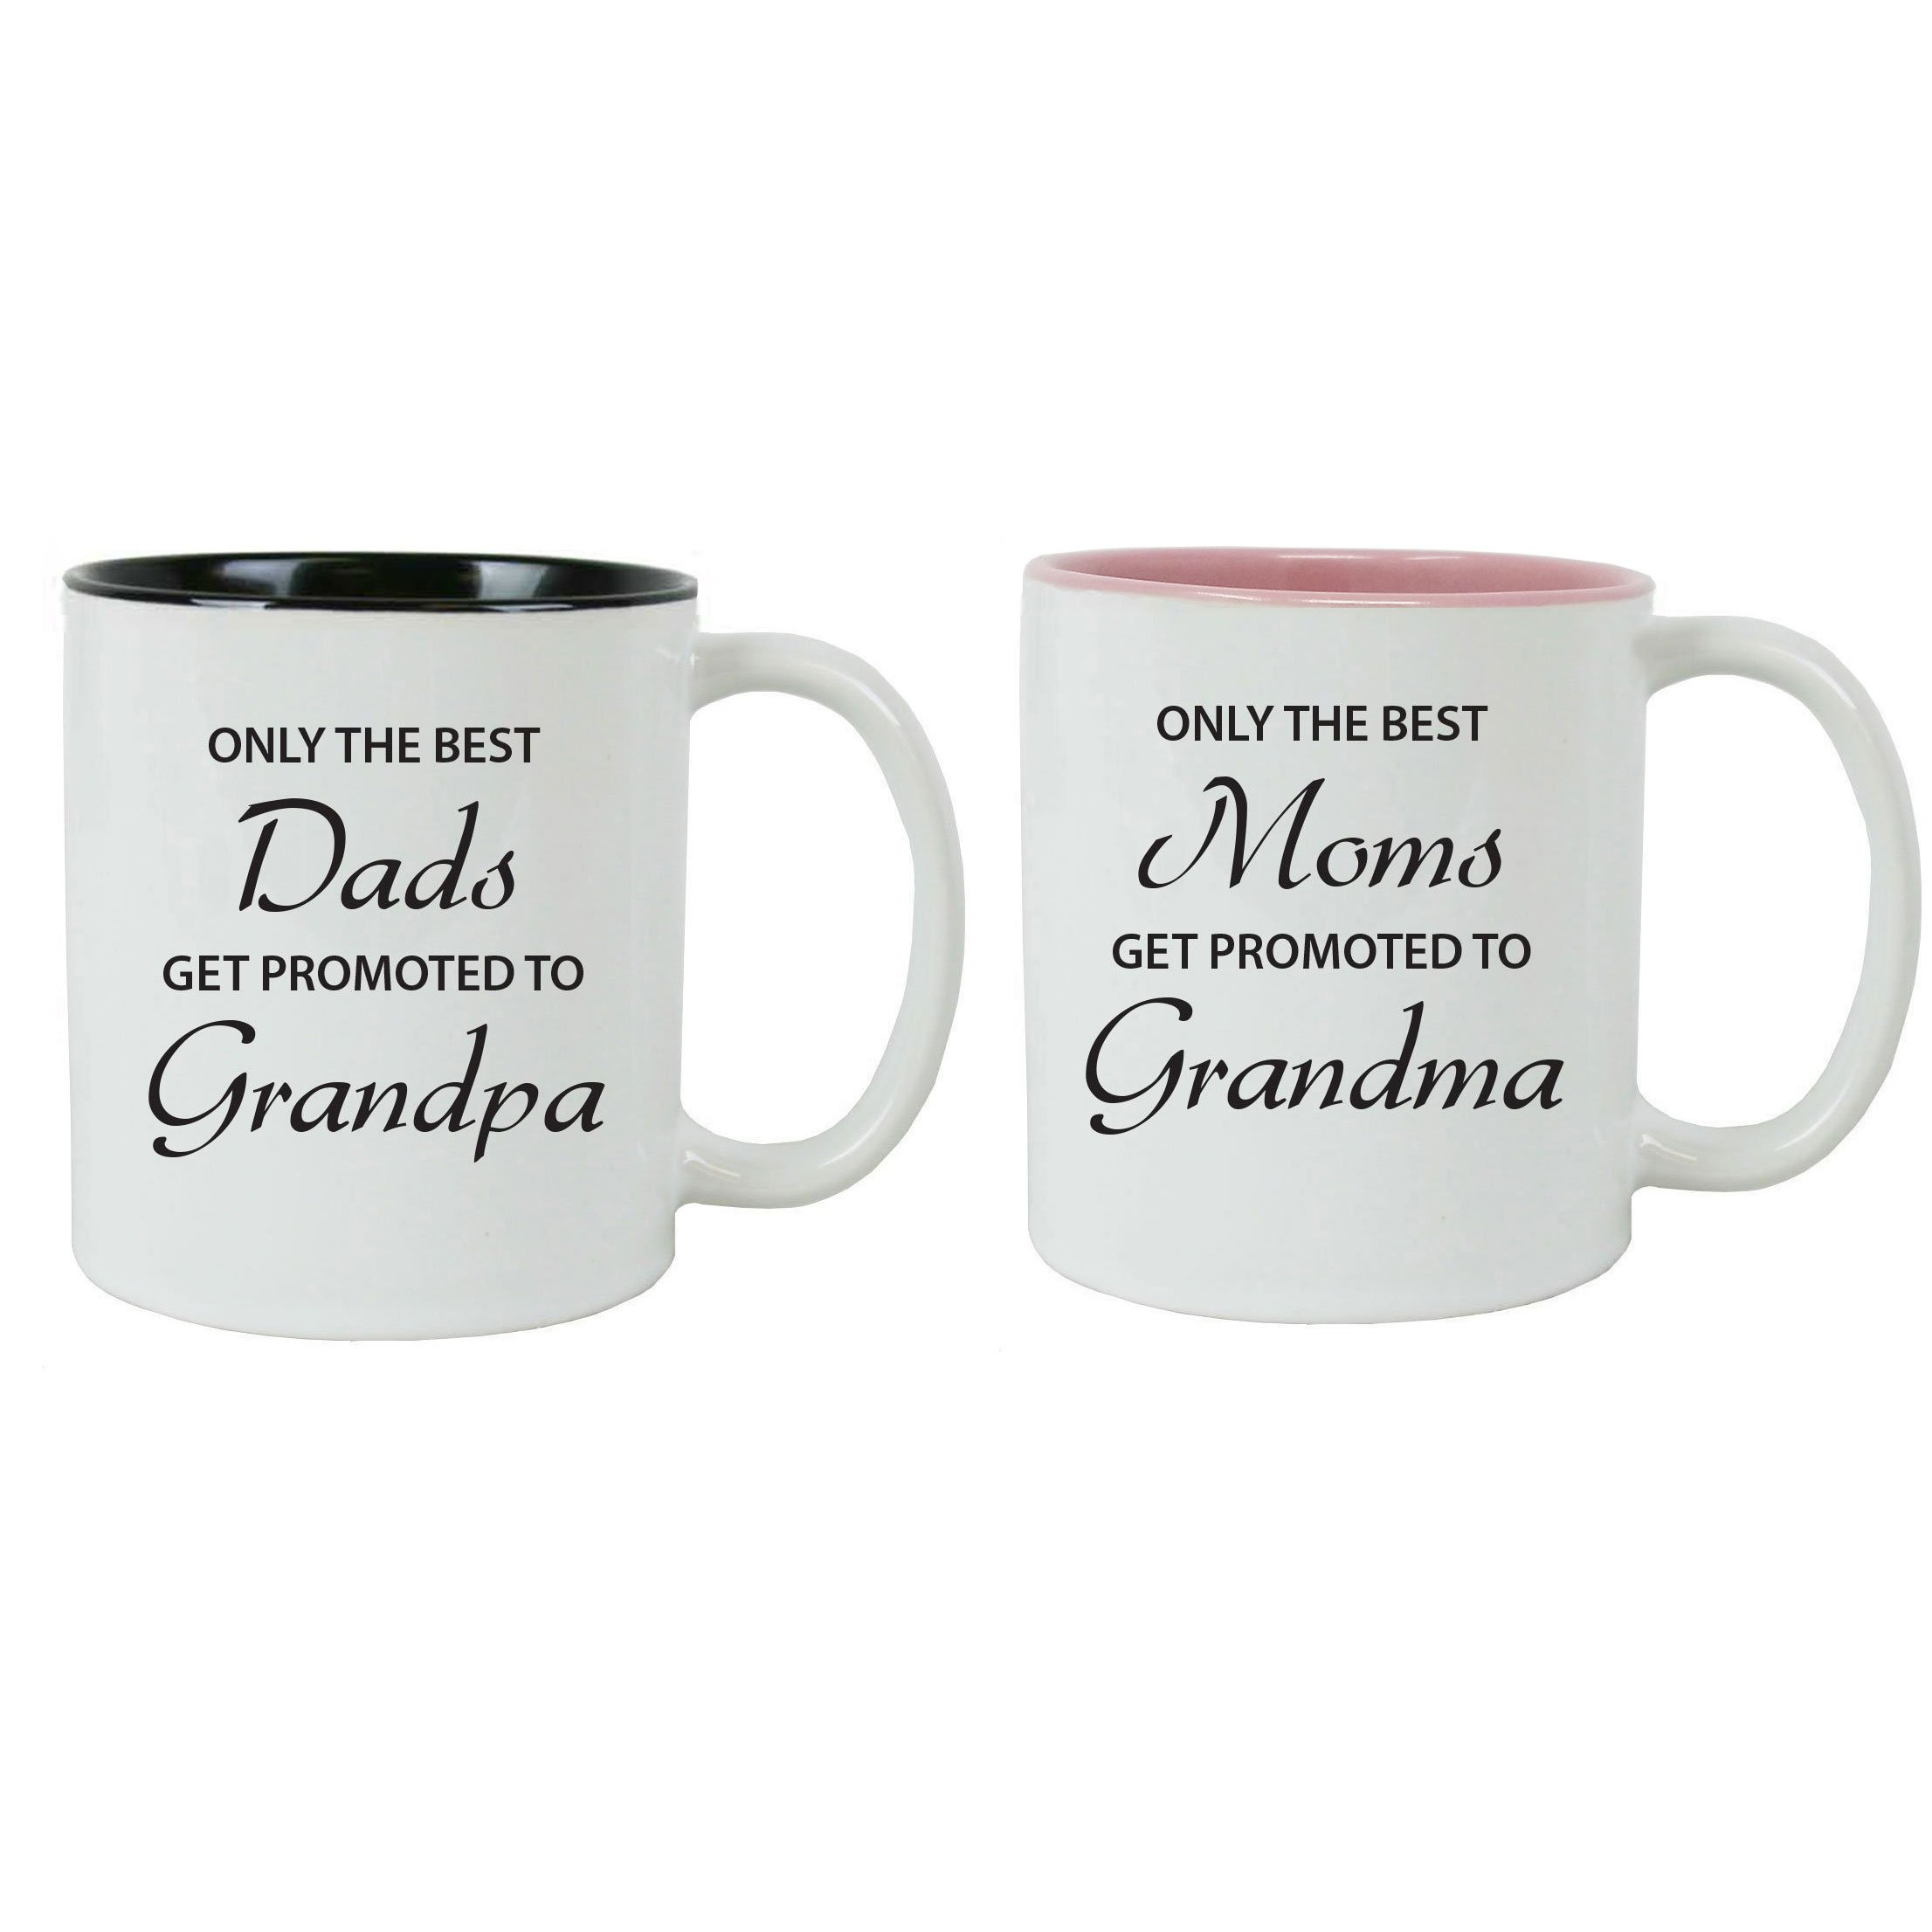 CustomGiftsNow Only The Best Dads/Moms Get Promoted to Grandpa/Grandma White 11 Ounce Ceramic Coffee Mugs Bundle, (Black,Pink)